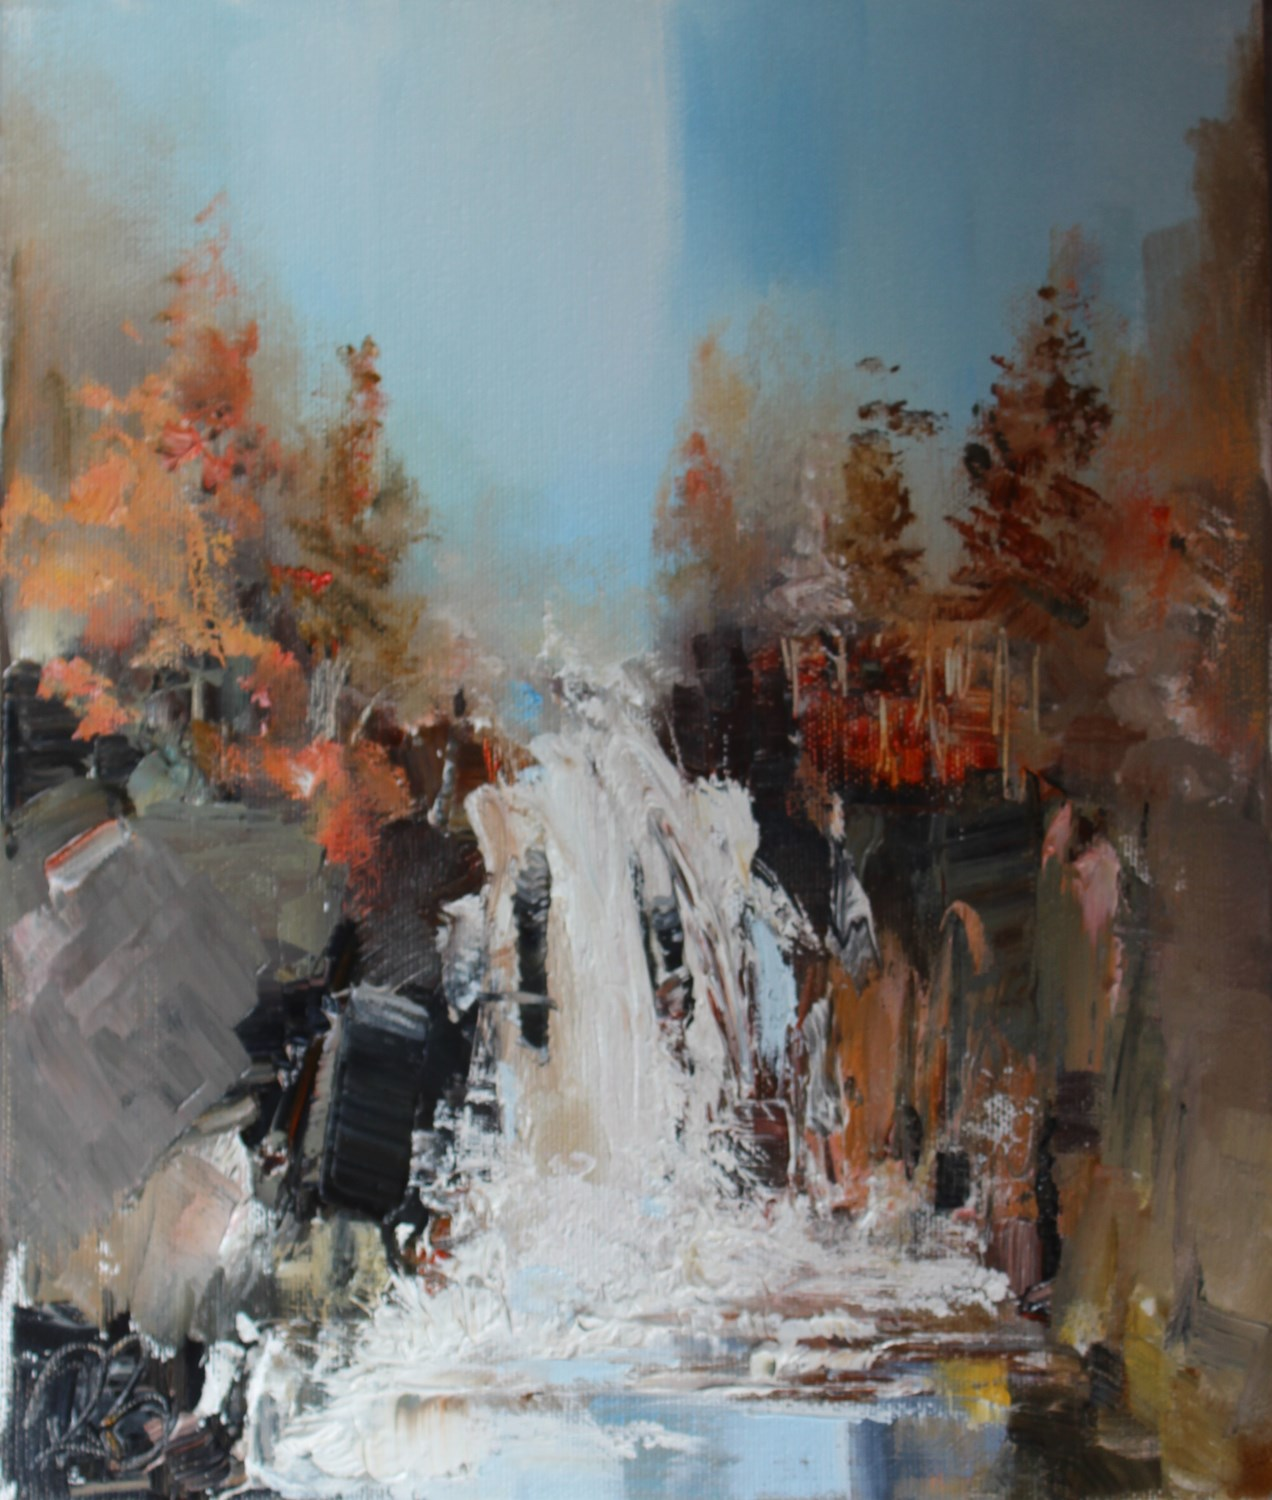 'Finding the hidden falls ' by artist Rosanne Barr